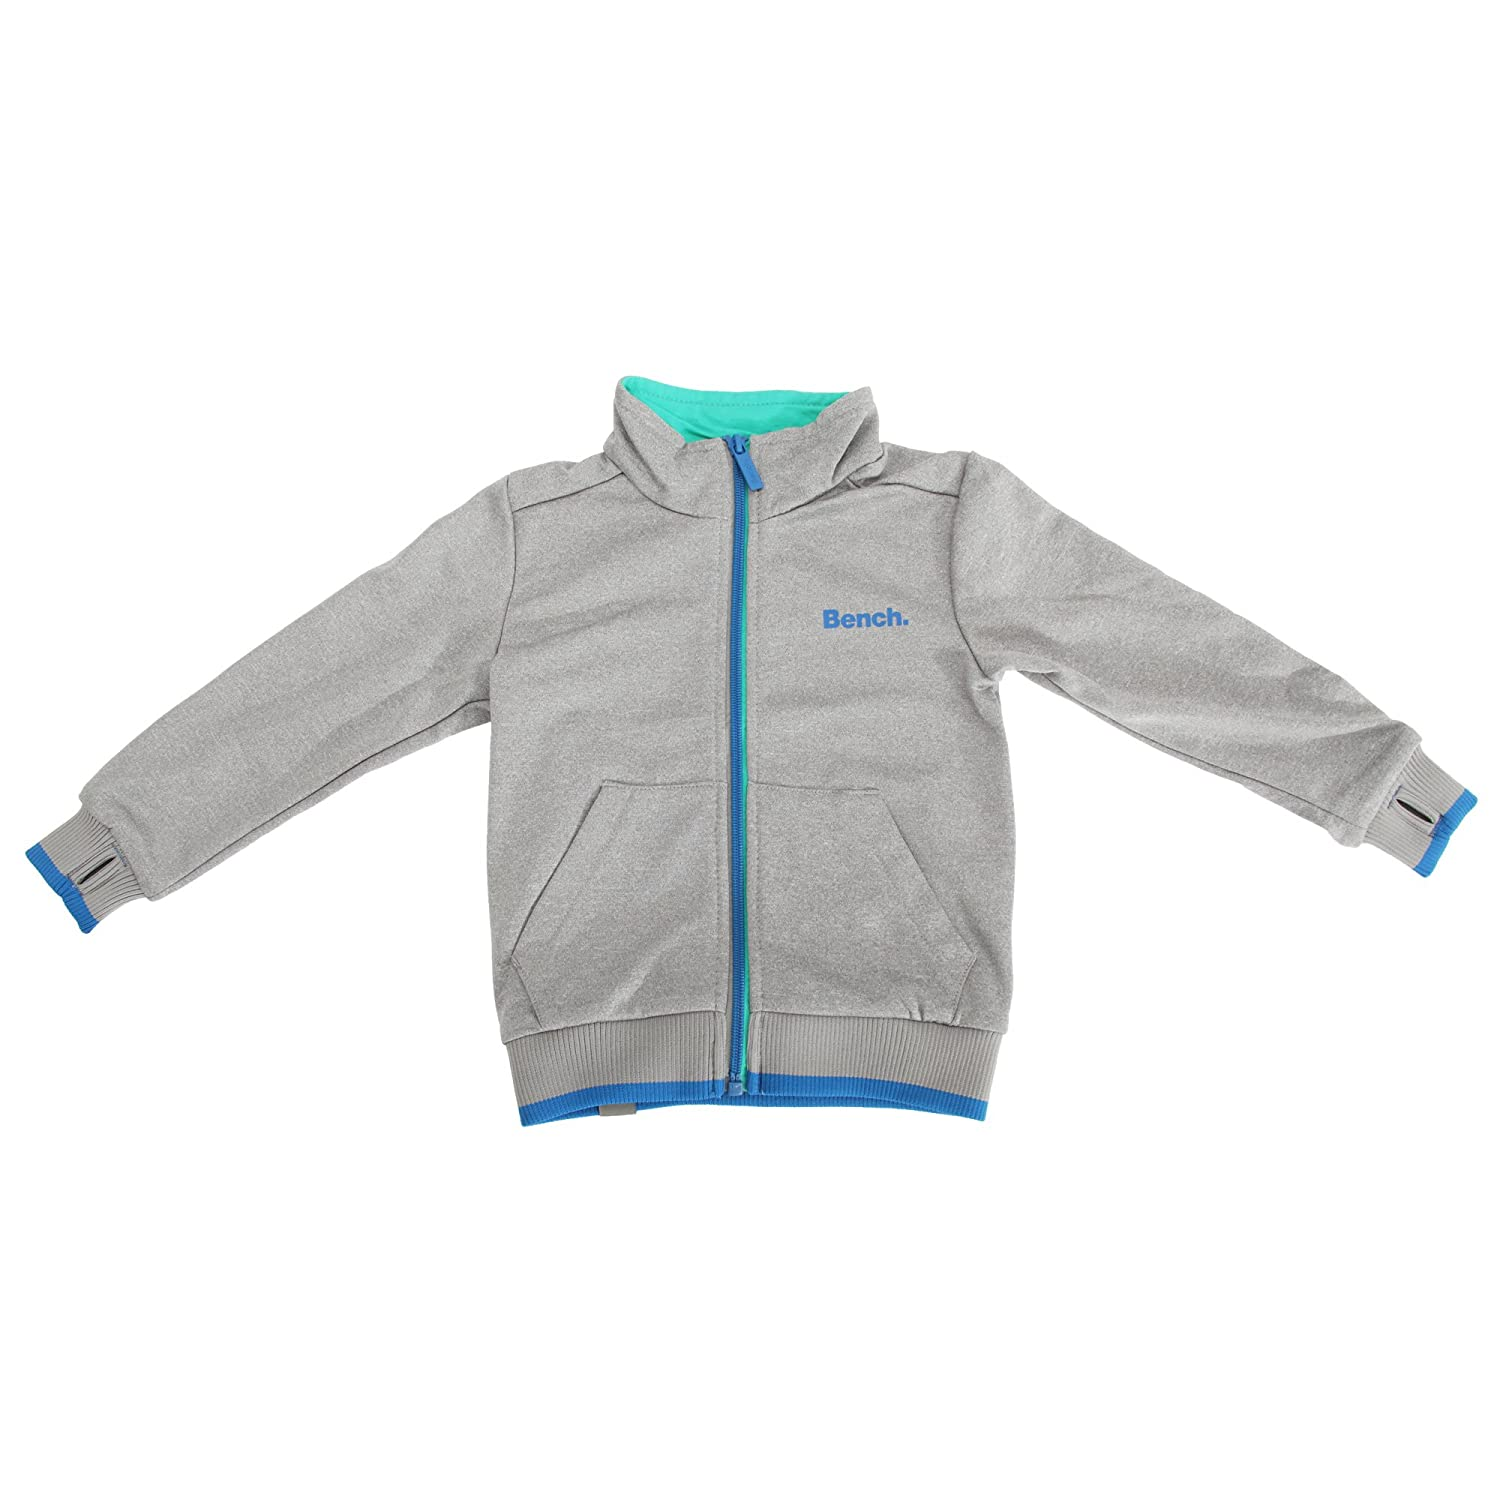 Bench Childrens/Boys Bottle Zip Up Jacket With Contrast Logo